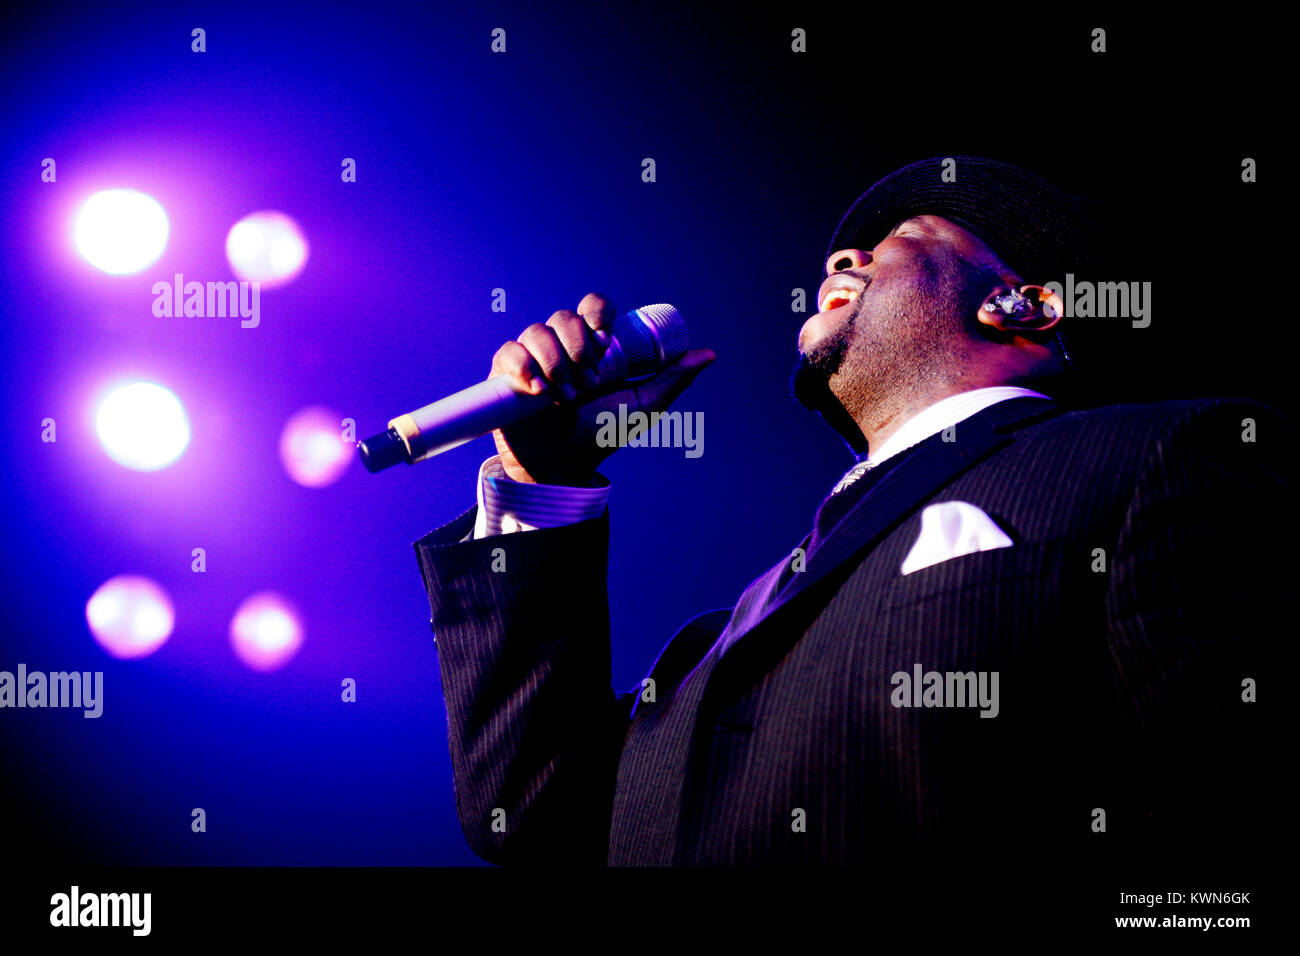 The American R&B and vocal group Boyz II Men performs a live concert at Vega in Copenhagen. Here singer Wanya - Stock Image